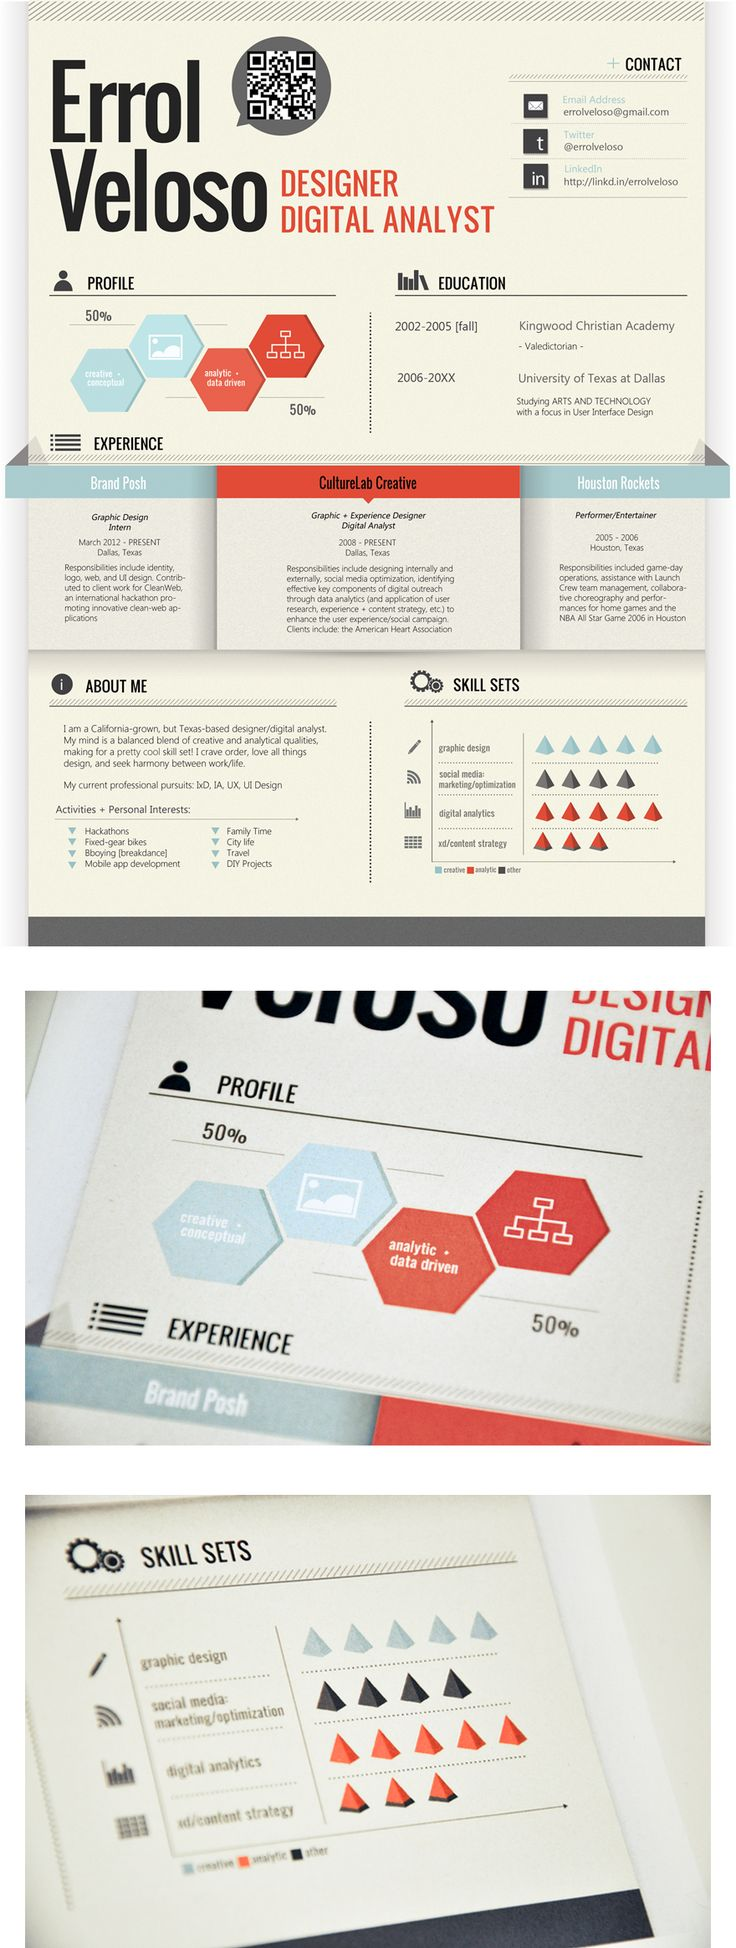 17 best images about infographic resume examples on